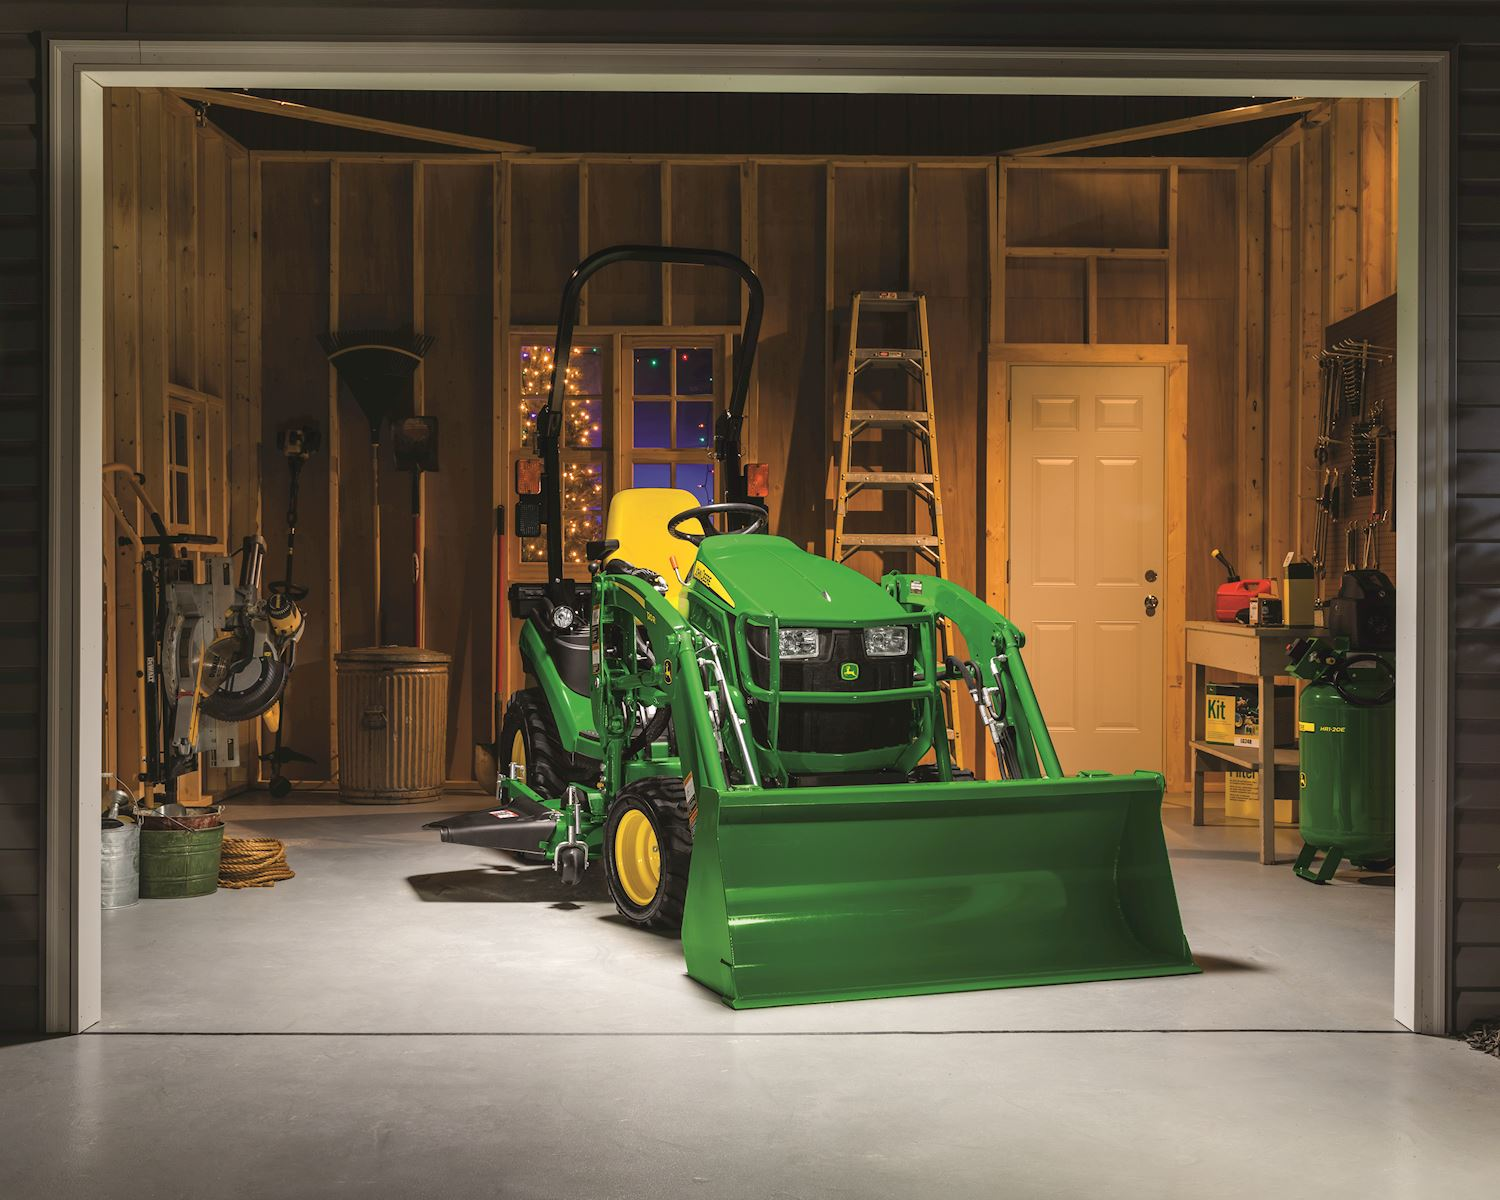 John Deere 1025R with the 120R Loader and 60D Mowing Deck